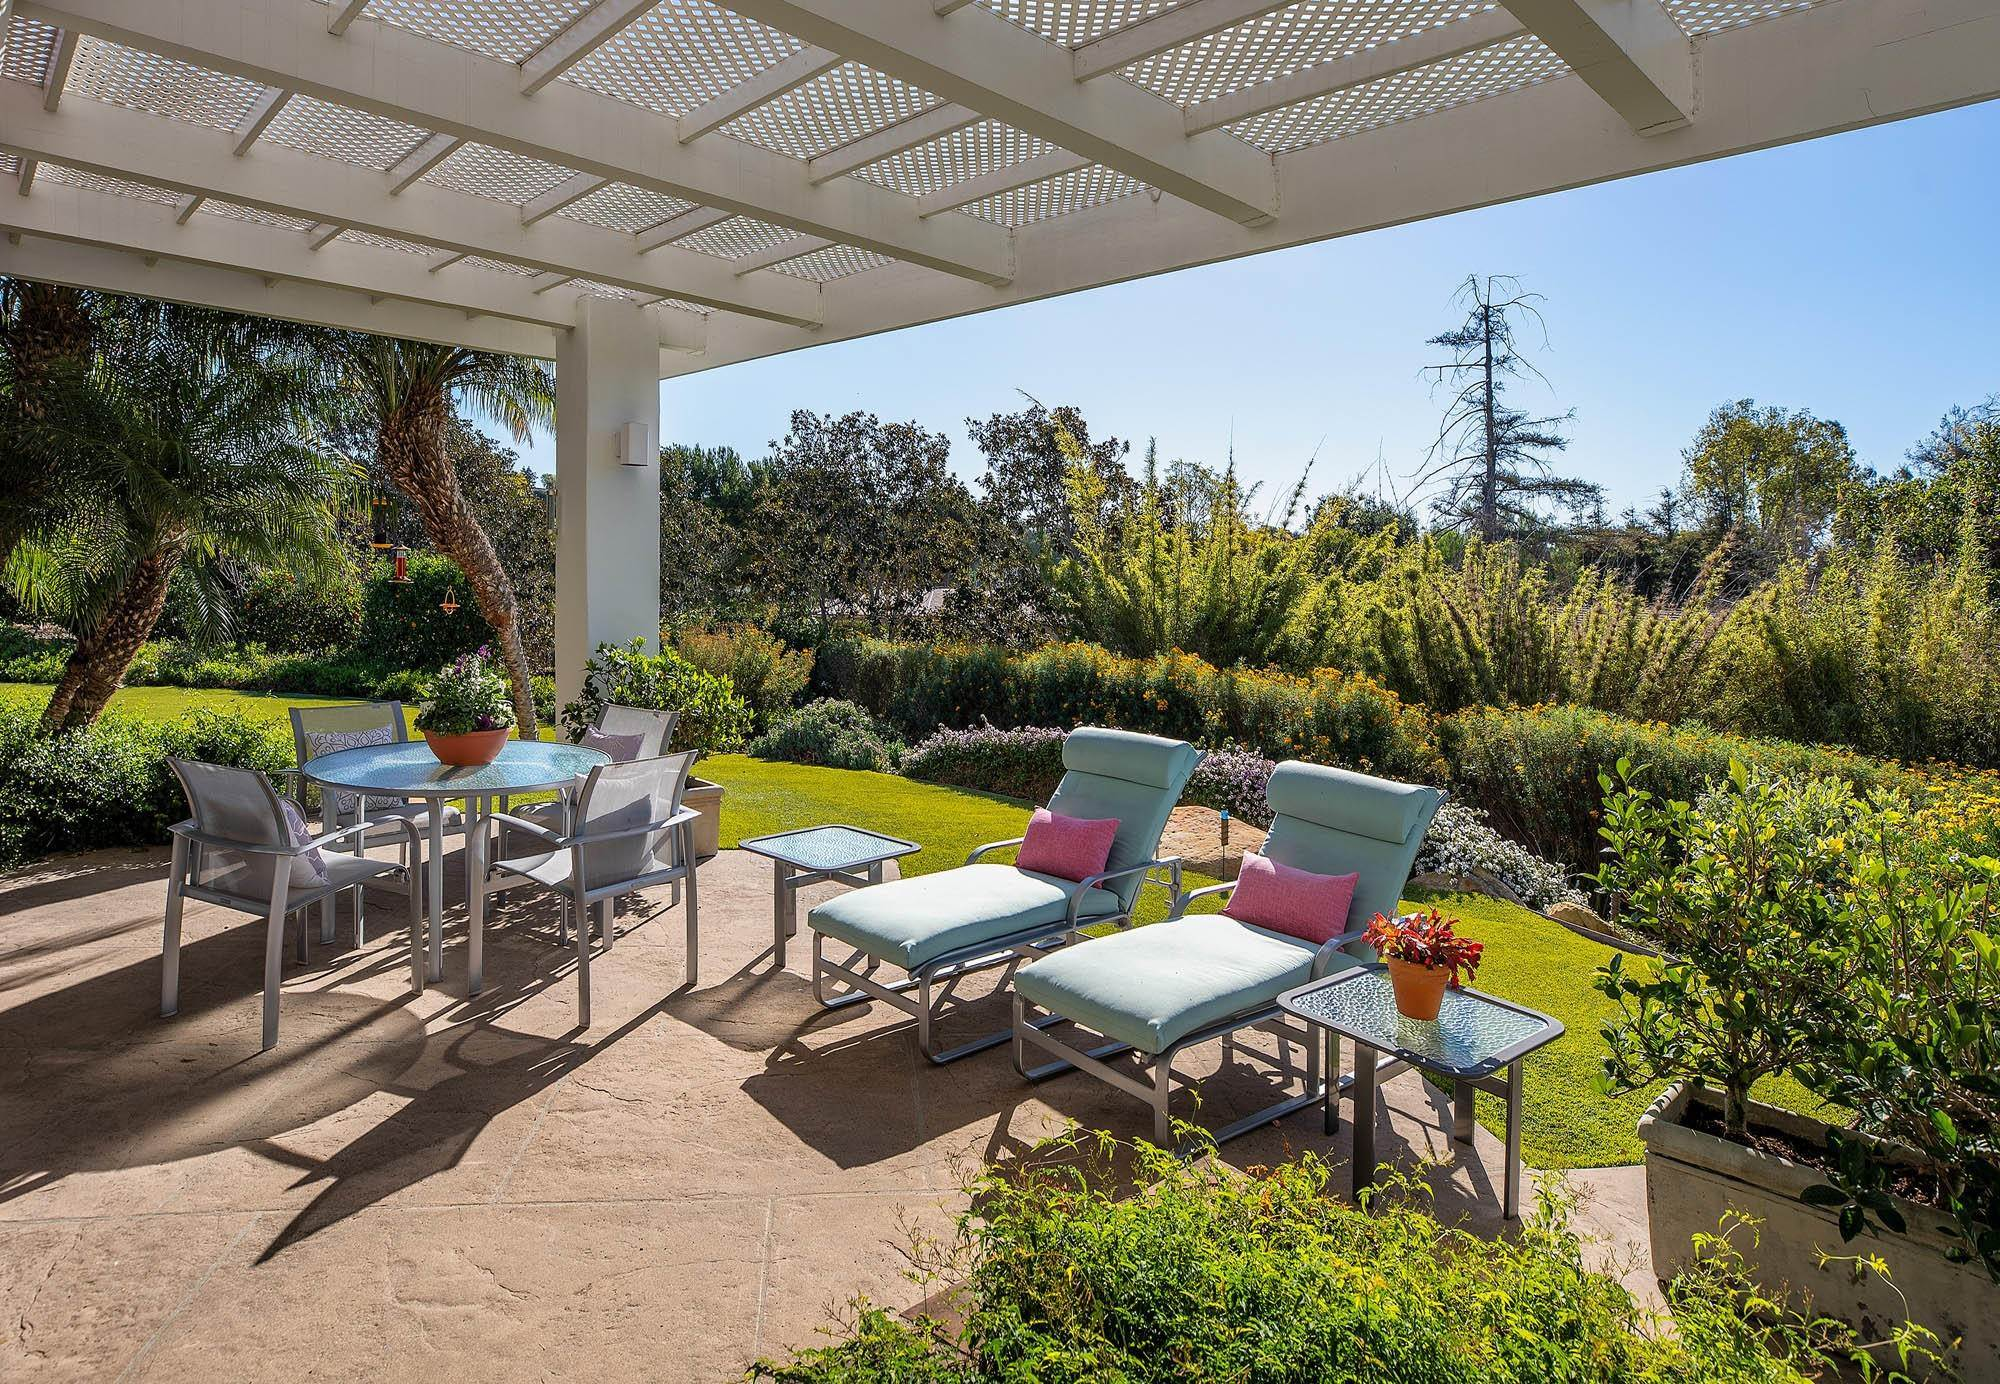 6. Estate for Sale at 957 Via Los Padres Santa Barbara, California 93111 United States